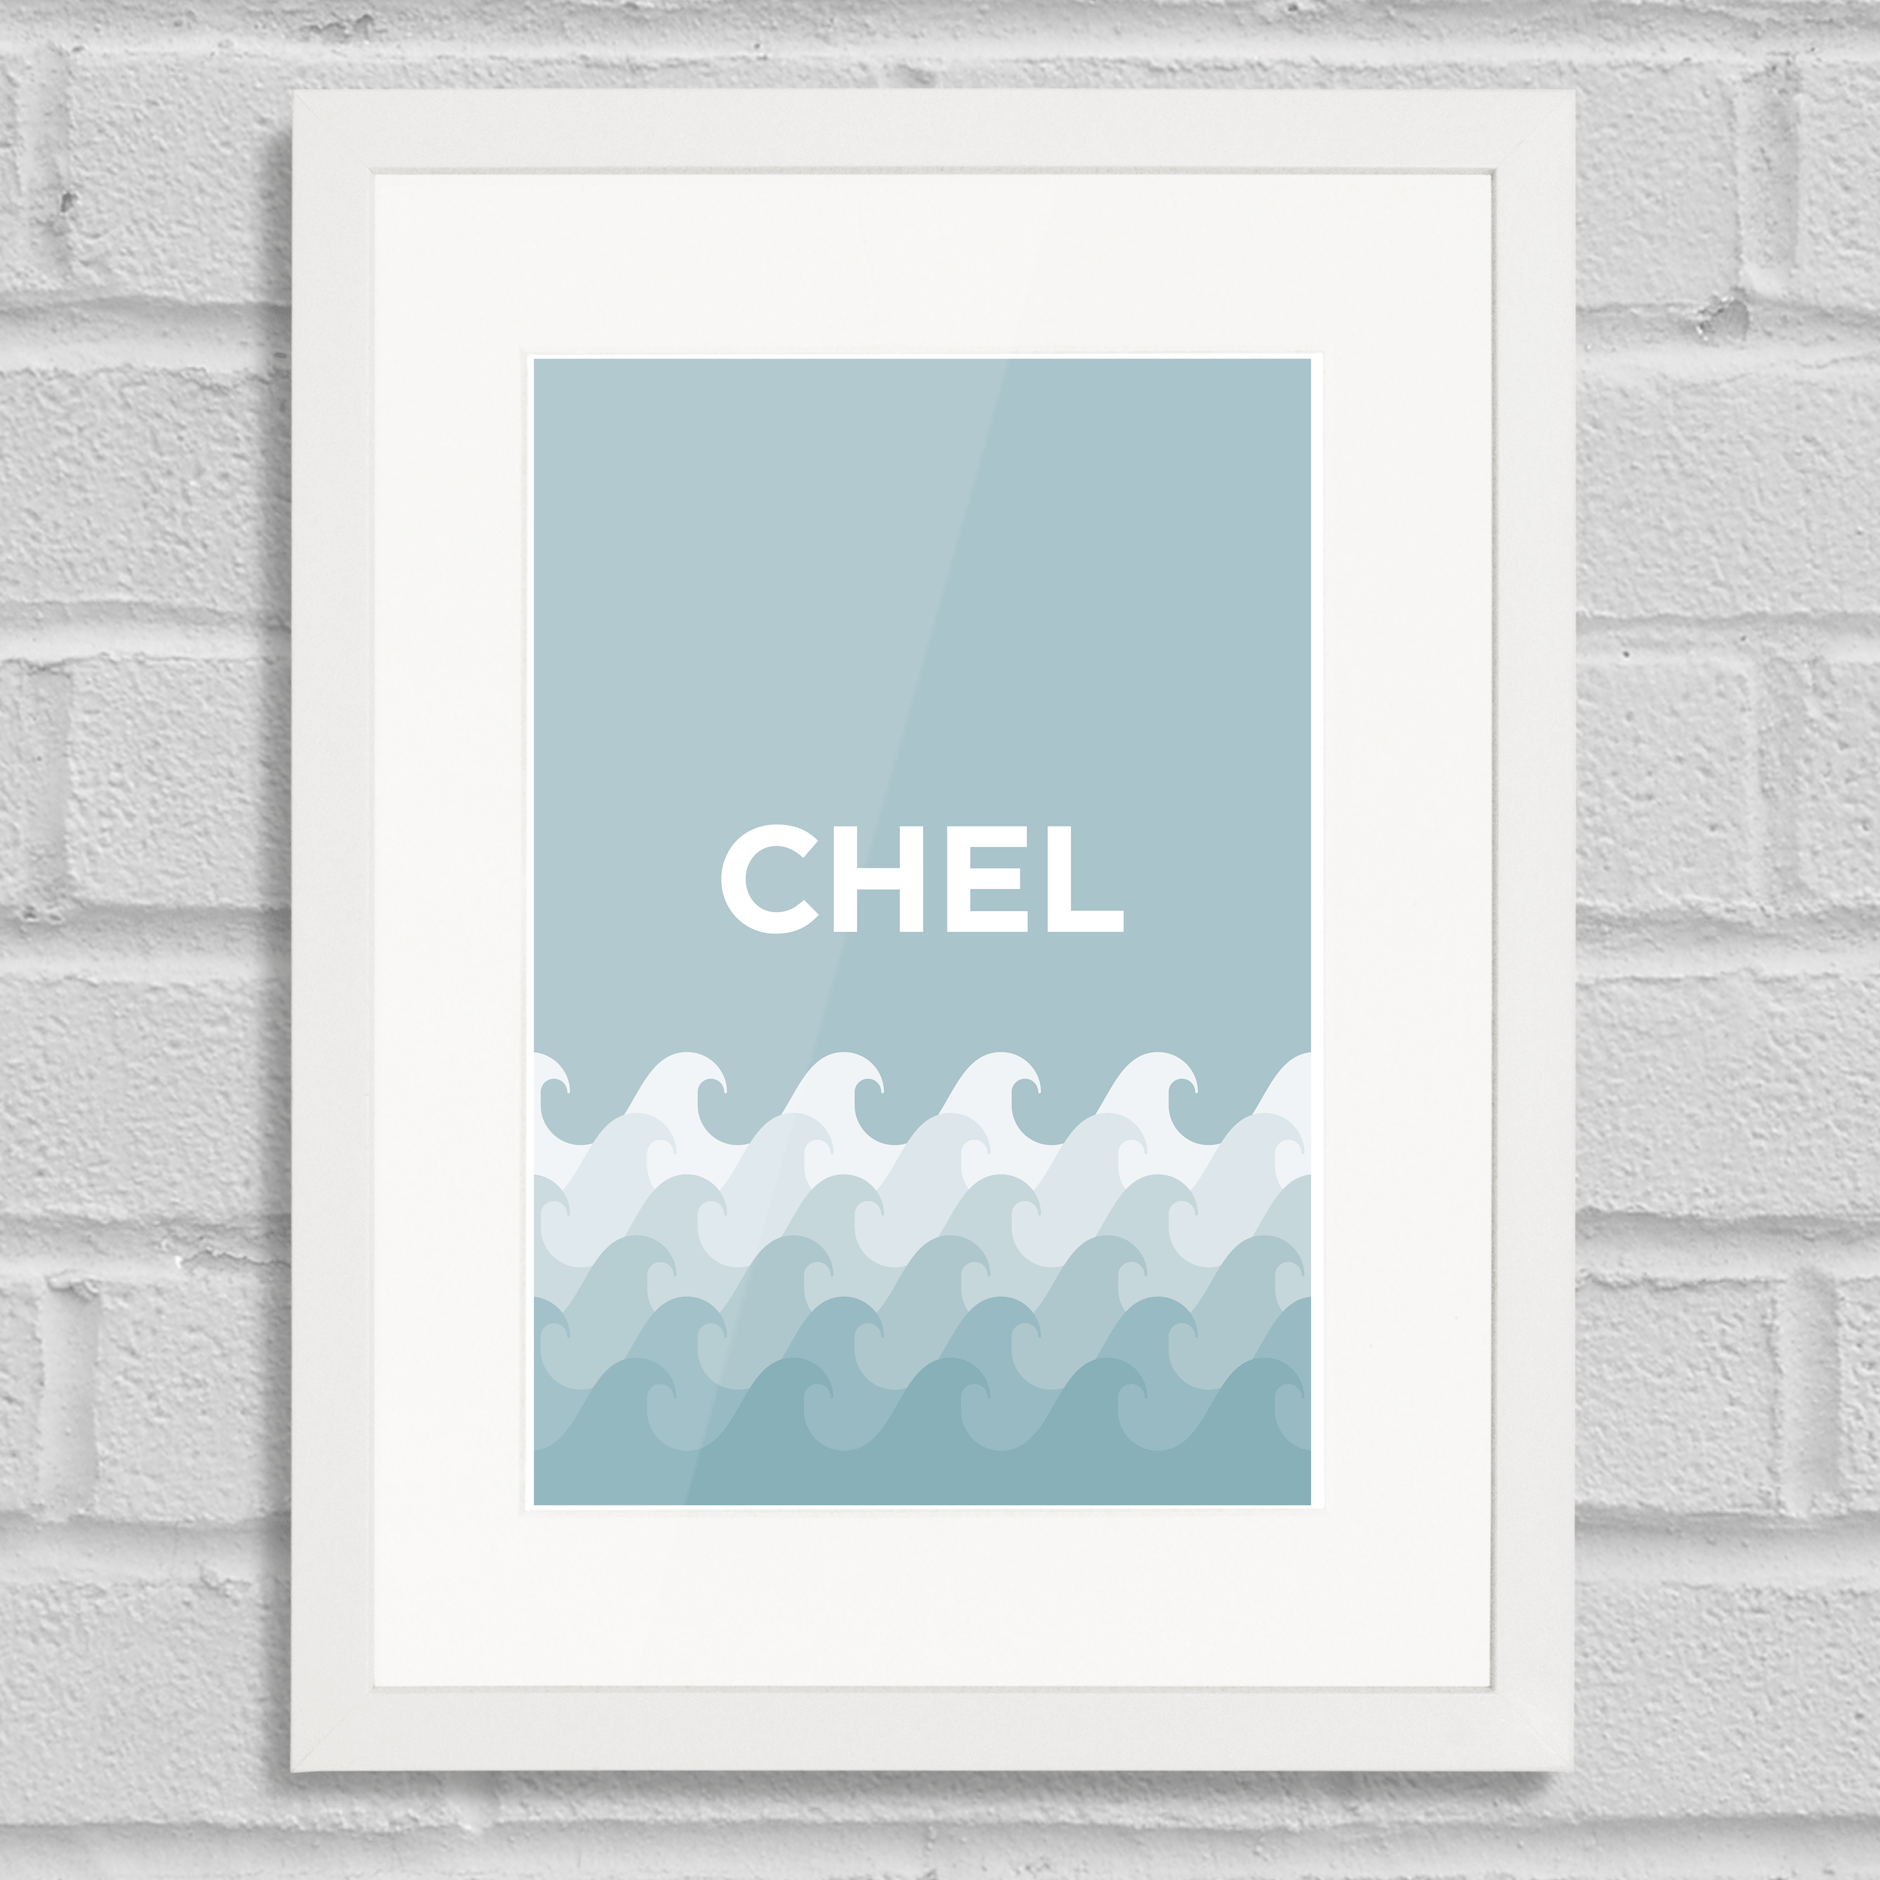 Pate Chelsea Art Poster Print Place Pun White Frame